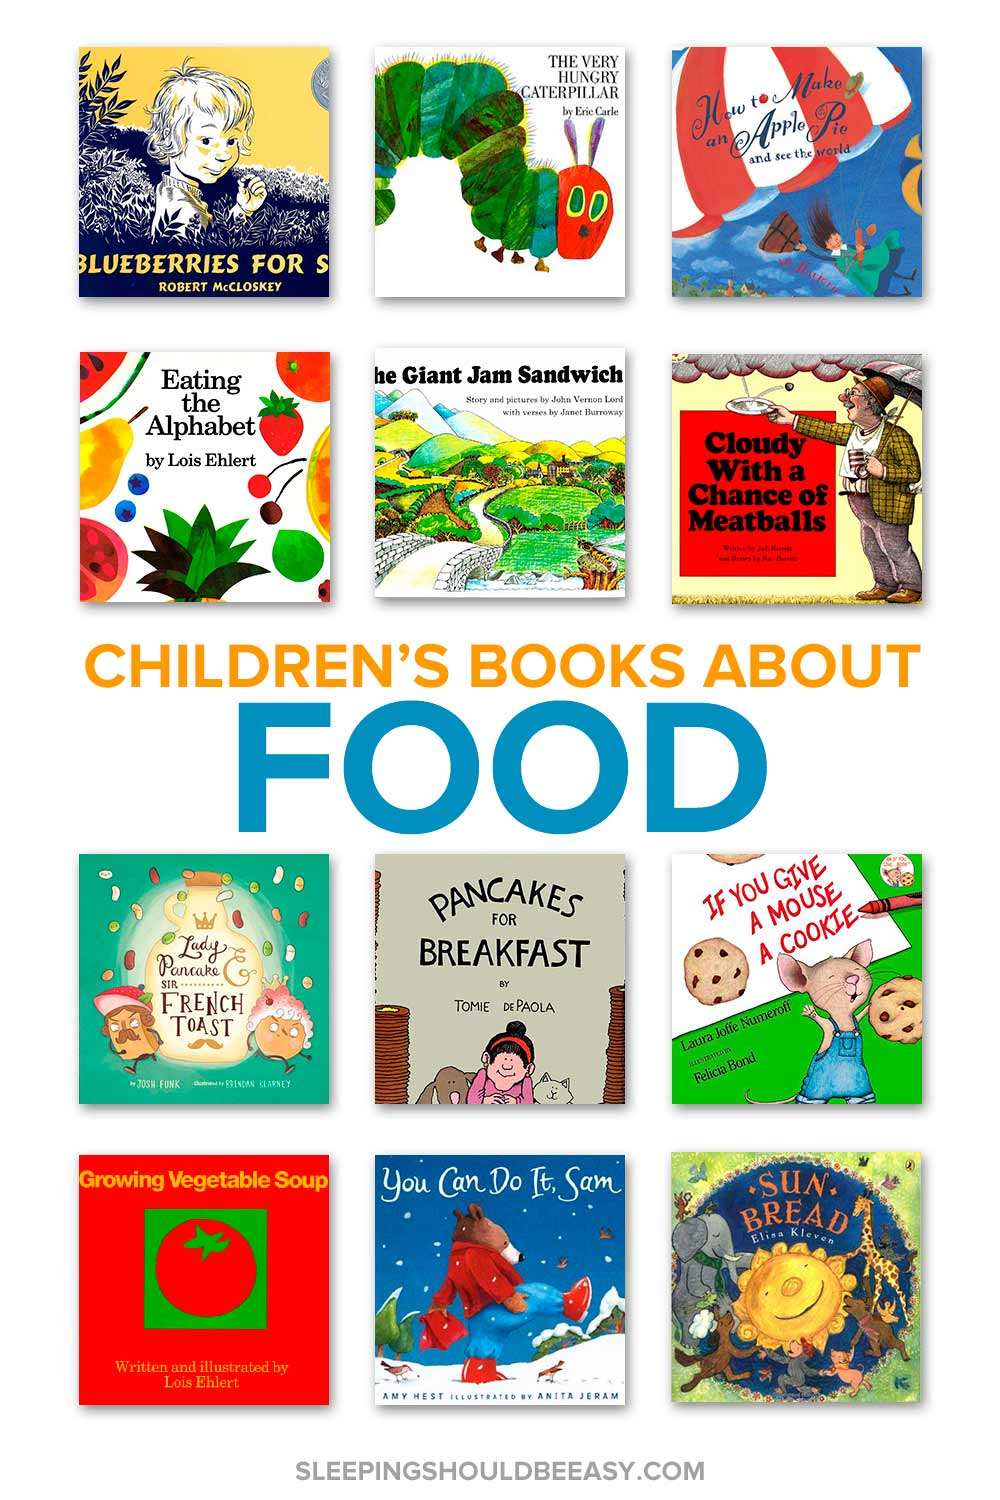 A collection of children's books about food